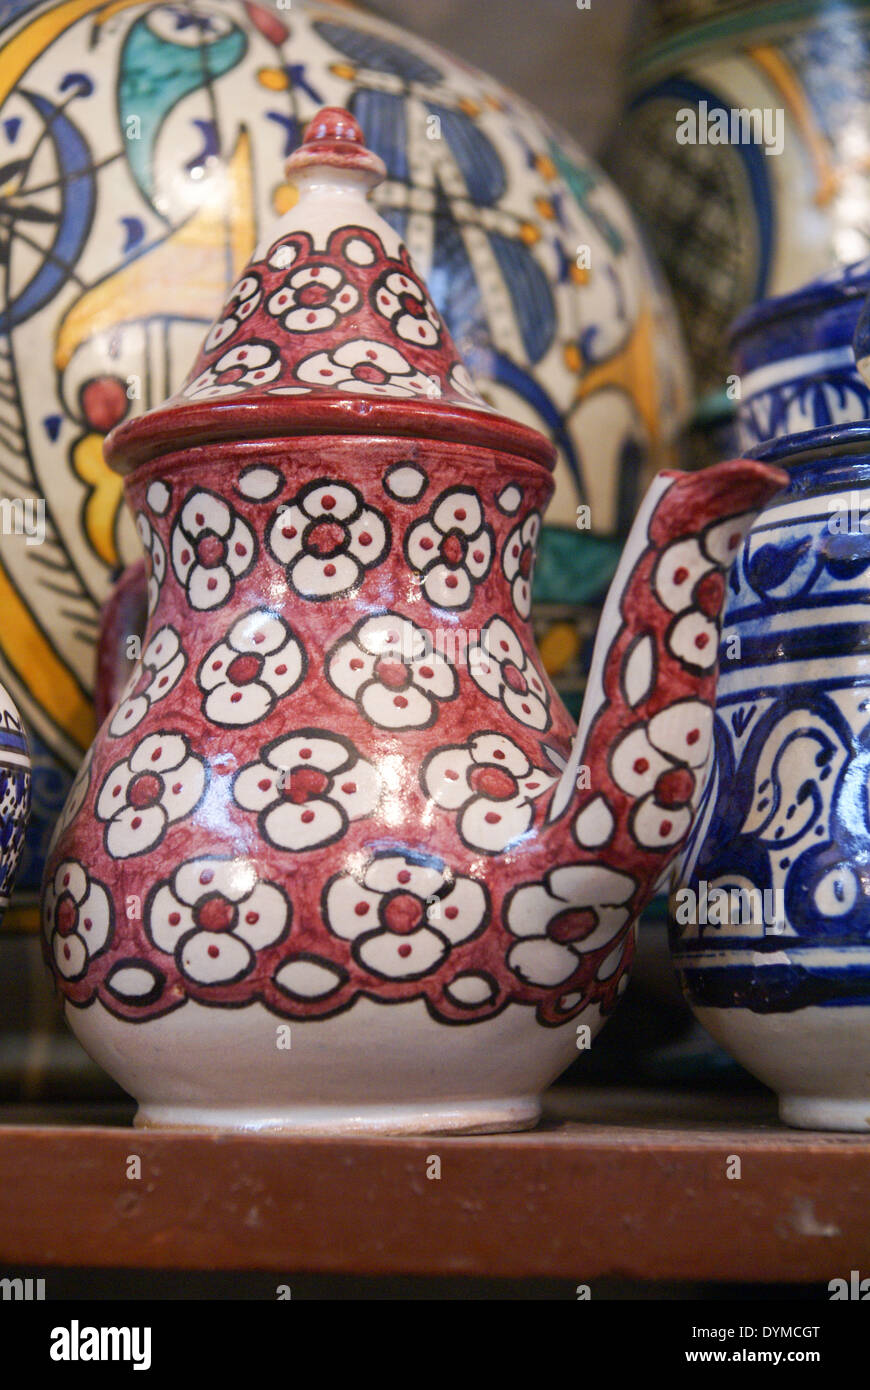 Moroccan pottery stock photos moroccan pottery stock images alamy moroccan ceramics photographed in fes morocco stock image reviewsmspy